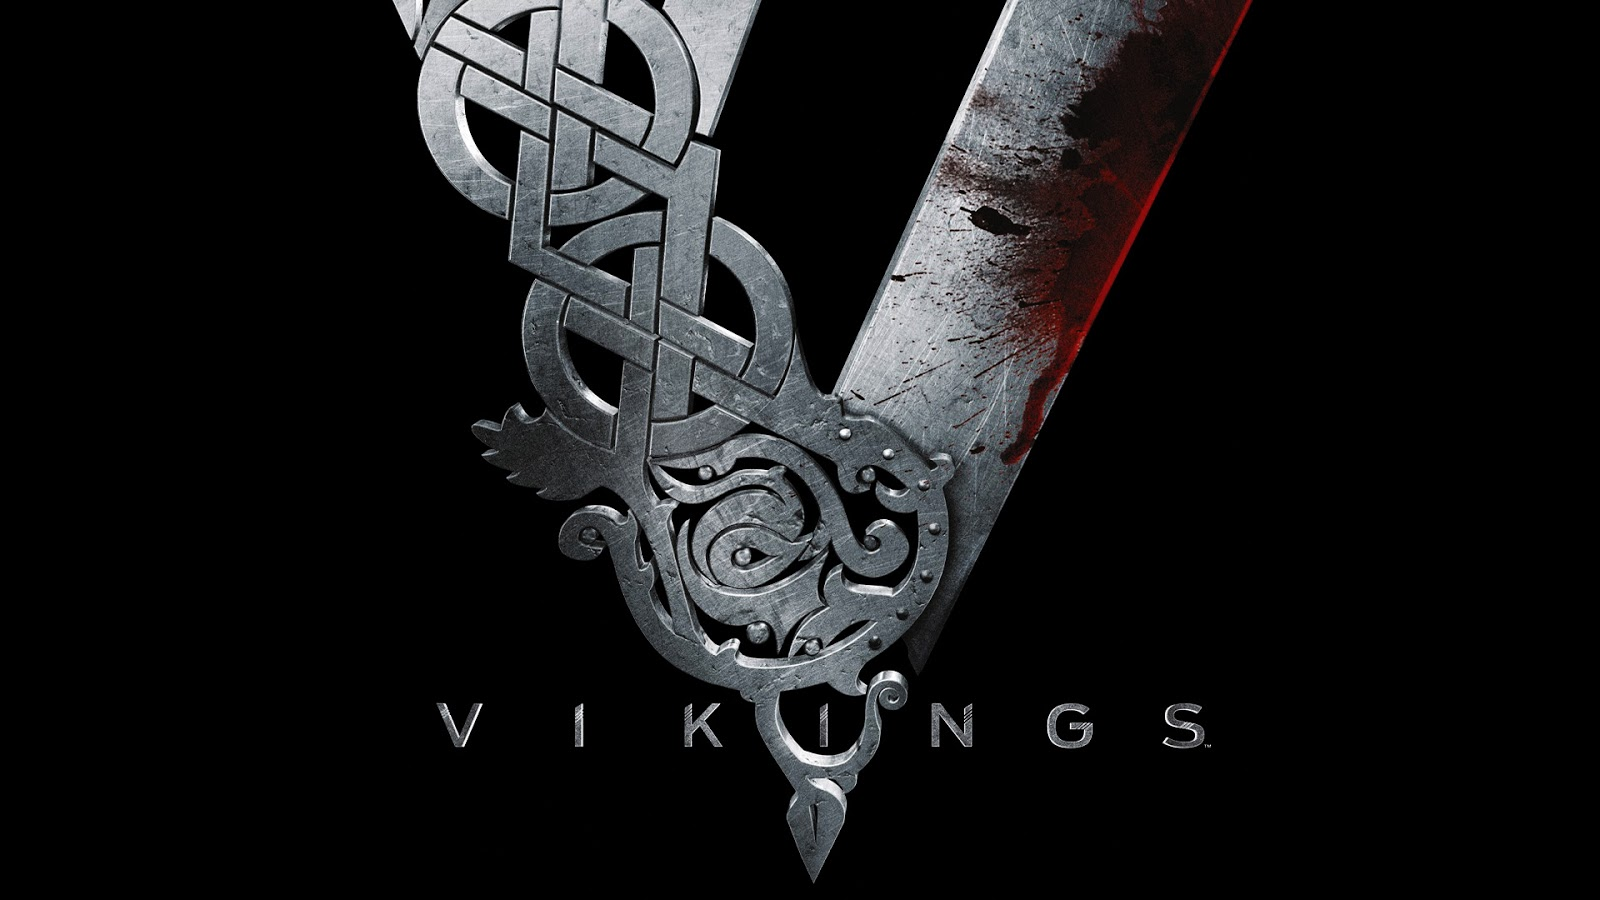 [43+] History Channel Vikings Wallpaper HD on WallpaperSafari